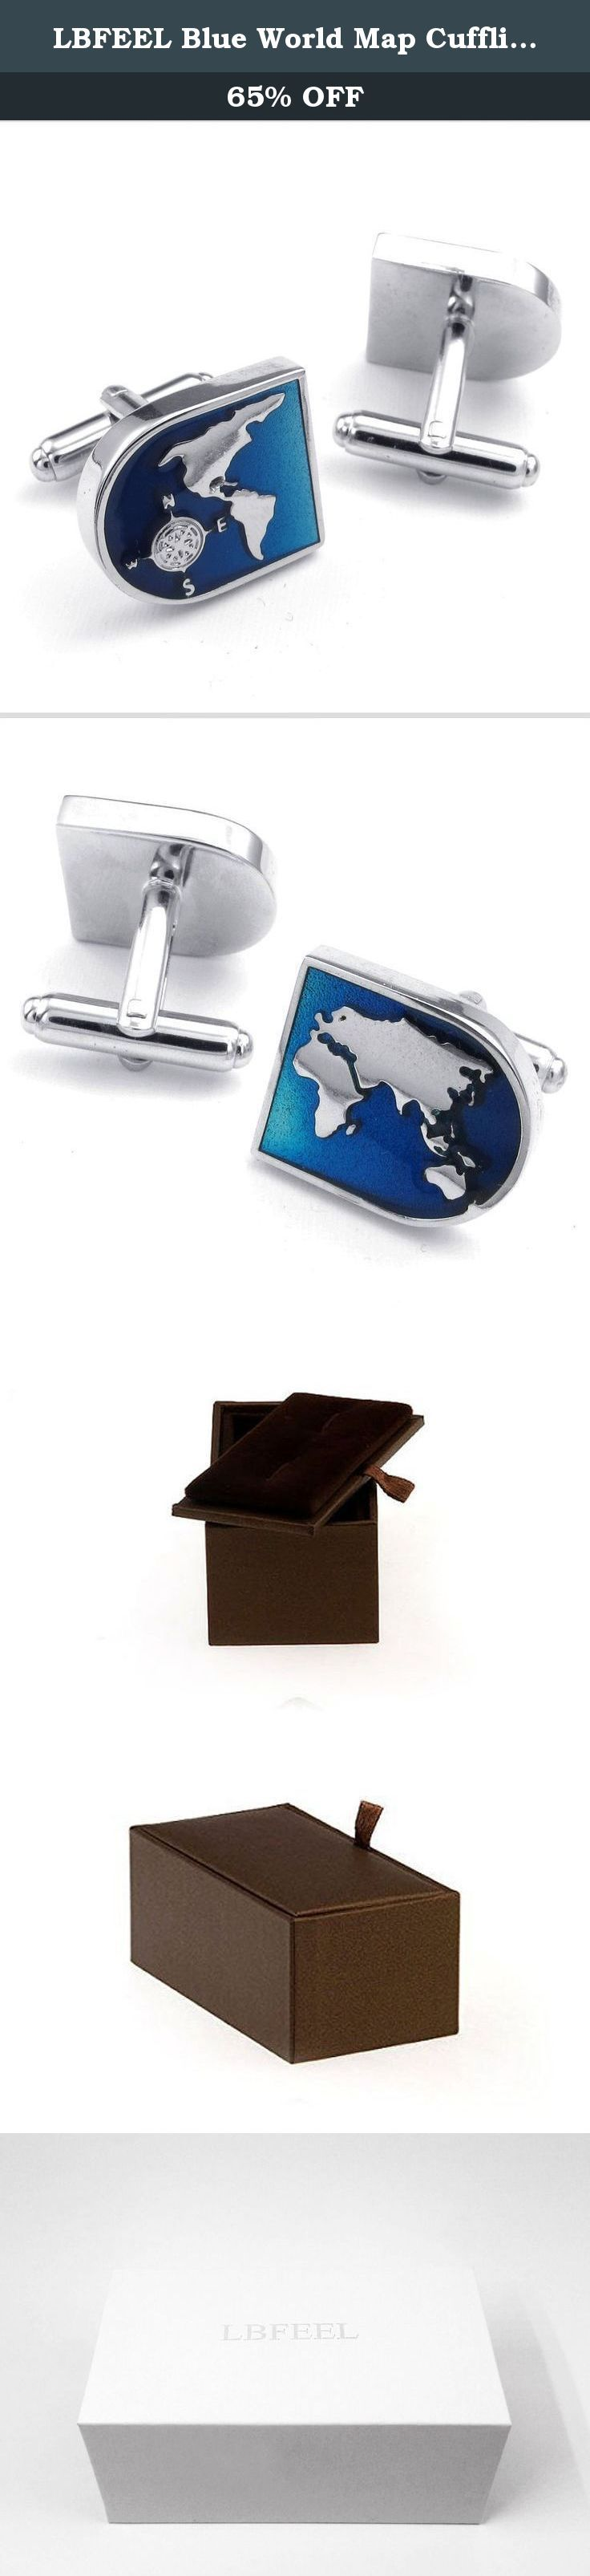 LBFEEL Blue World Map Cufflinks for Men with a Gift Box. These are very cool cufflinks. The map of the world is defined and fairly accurate. The mechanism is smooth and the bar deploys cleanly and stays in place. They come with a nice gift box for storage. The blue of the ocean goes with most suits and pairs well with most dress shirts.